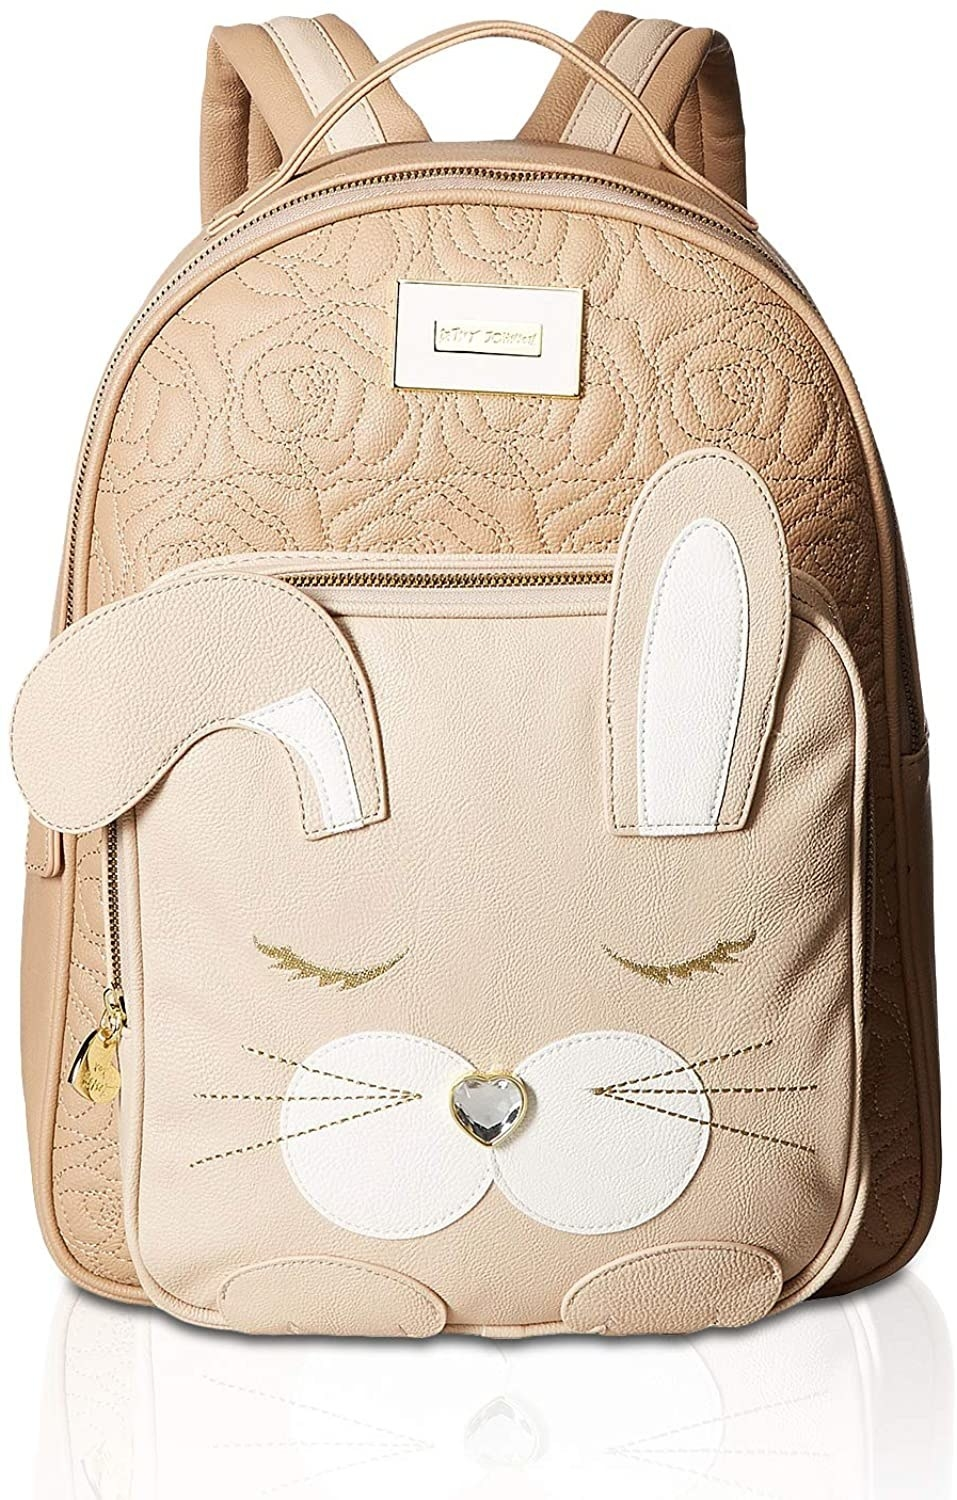 The tan quilted backpack with a front pocket with a bunny face, 3D ears, and a gemstone nose